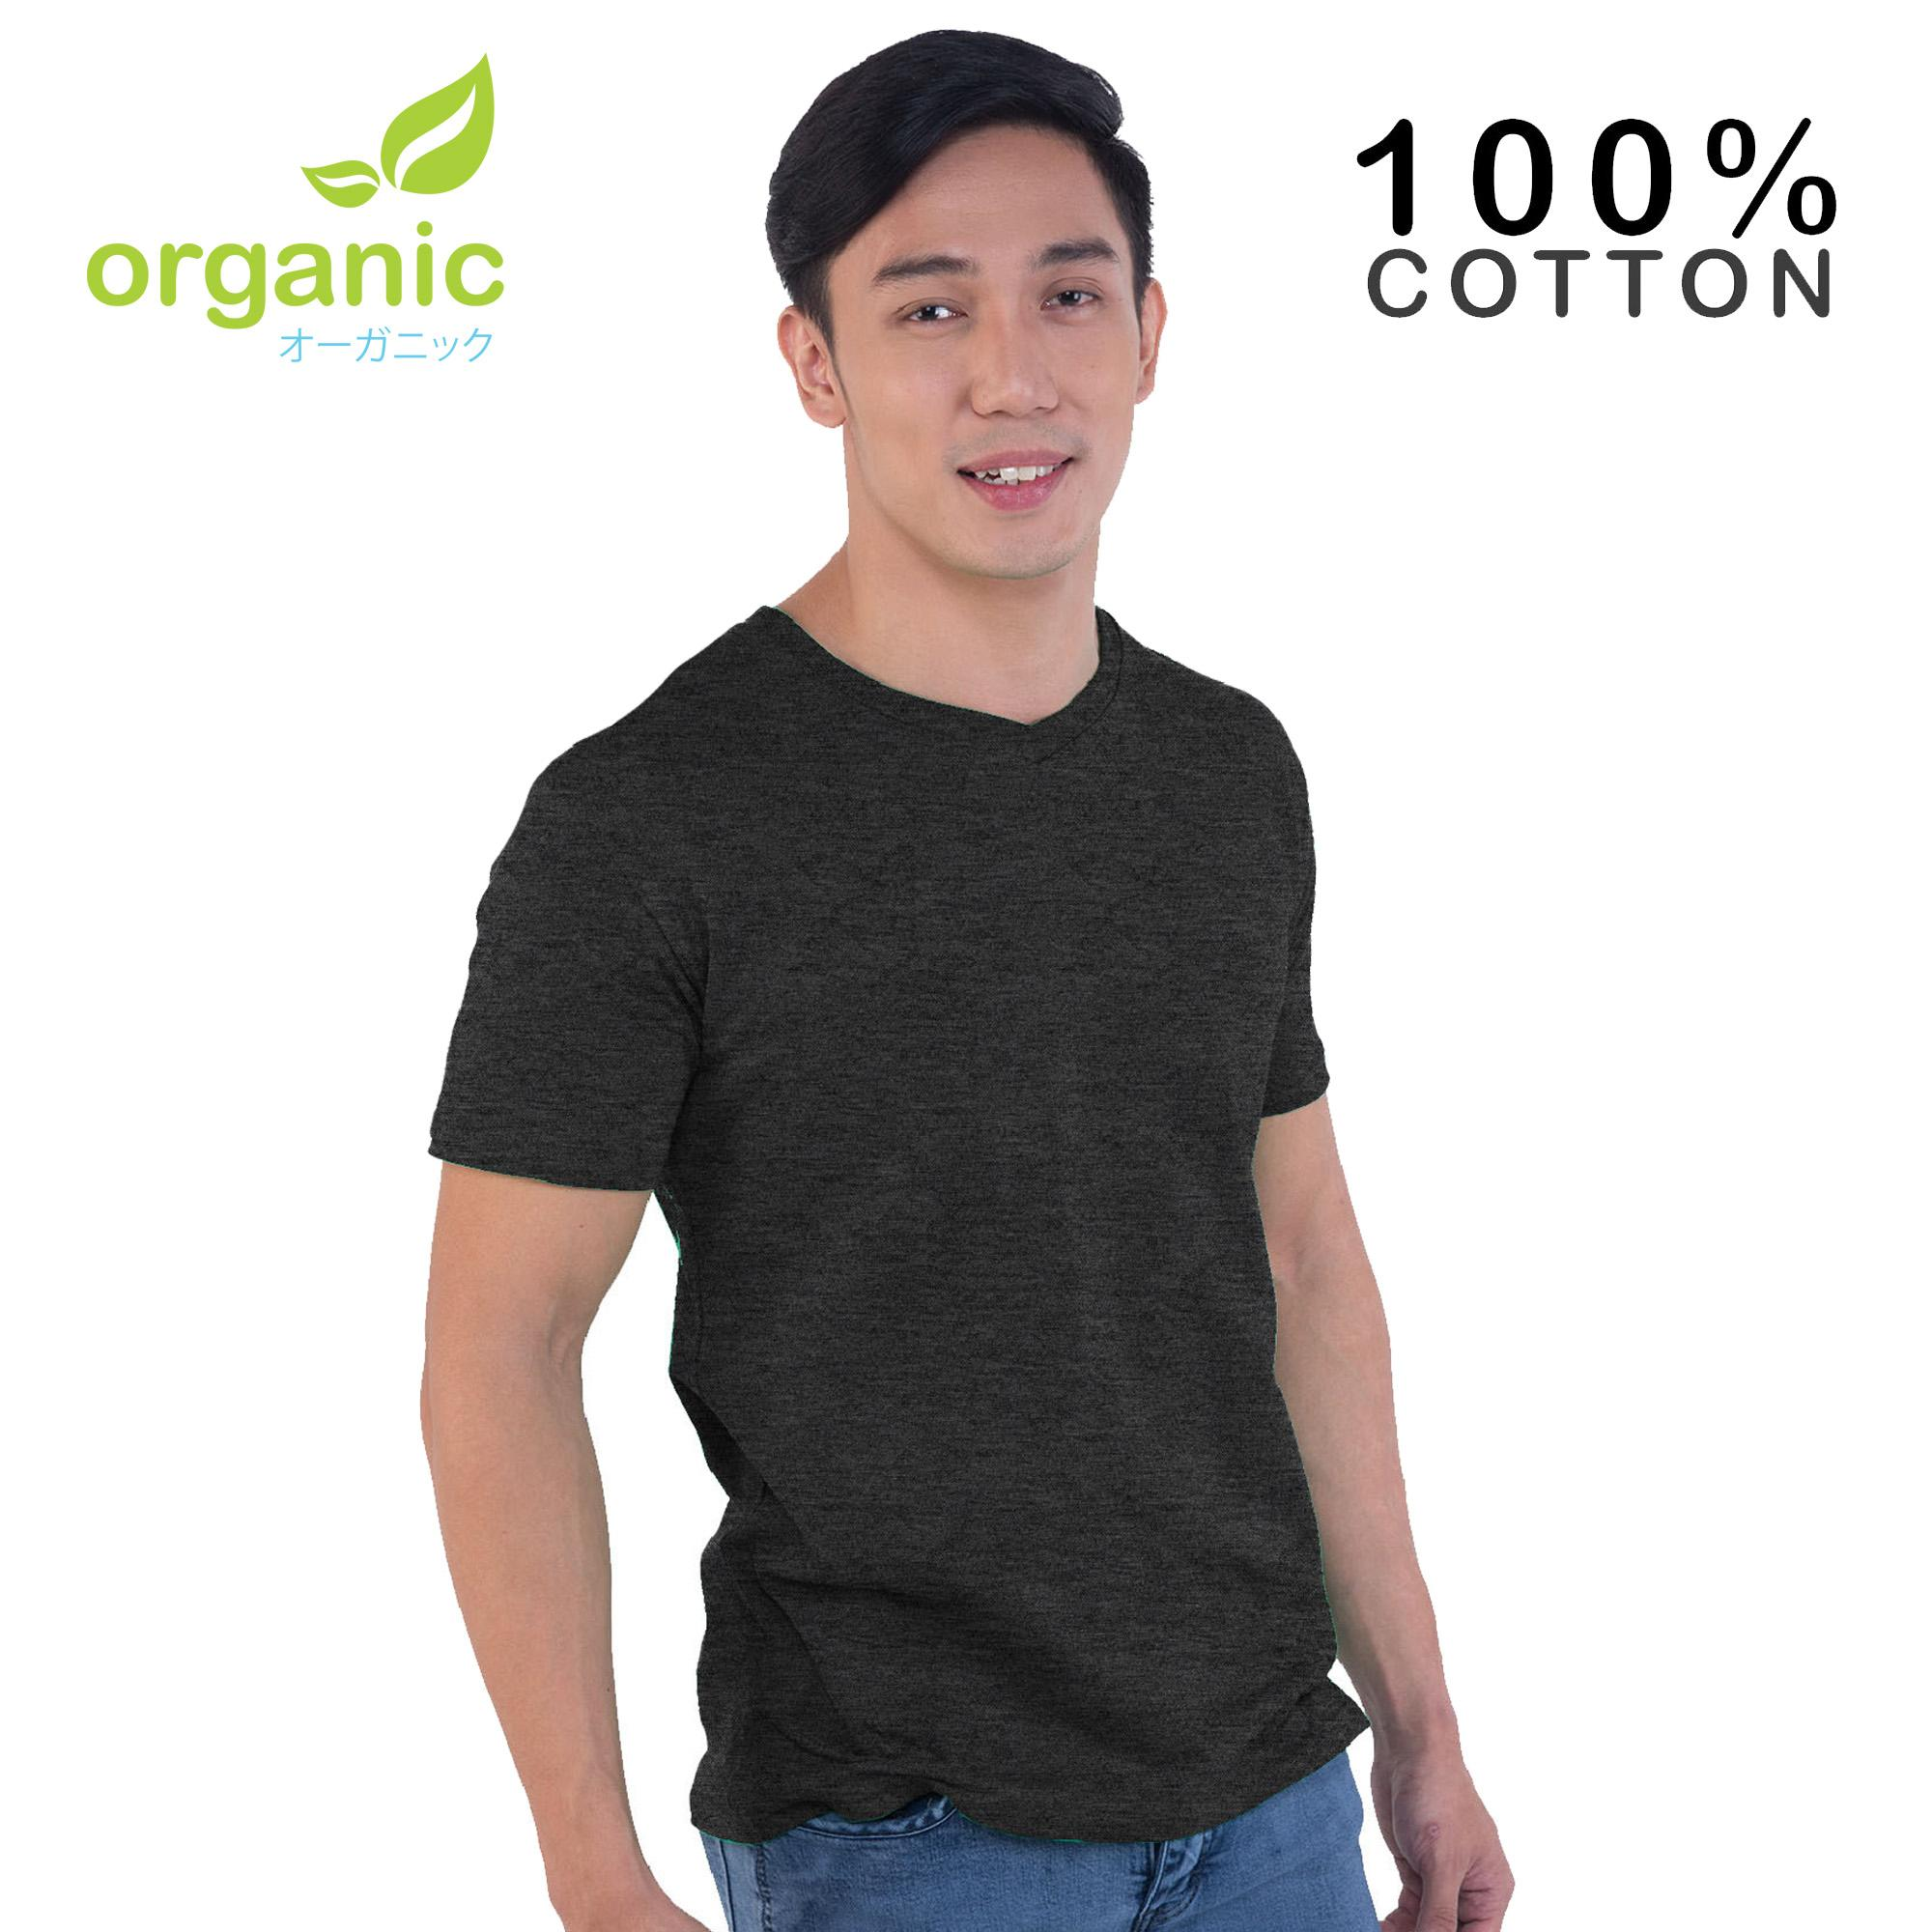 ced1fd9fcd03 T-Shirt Clothing for Men for sale - Mens Shirt Clothing online brands